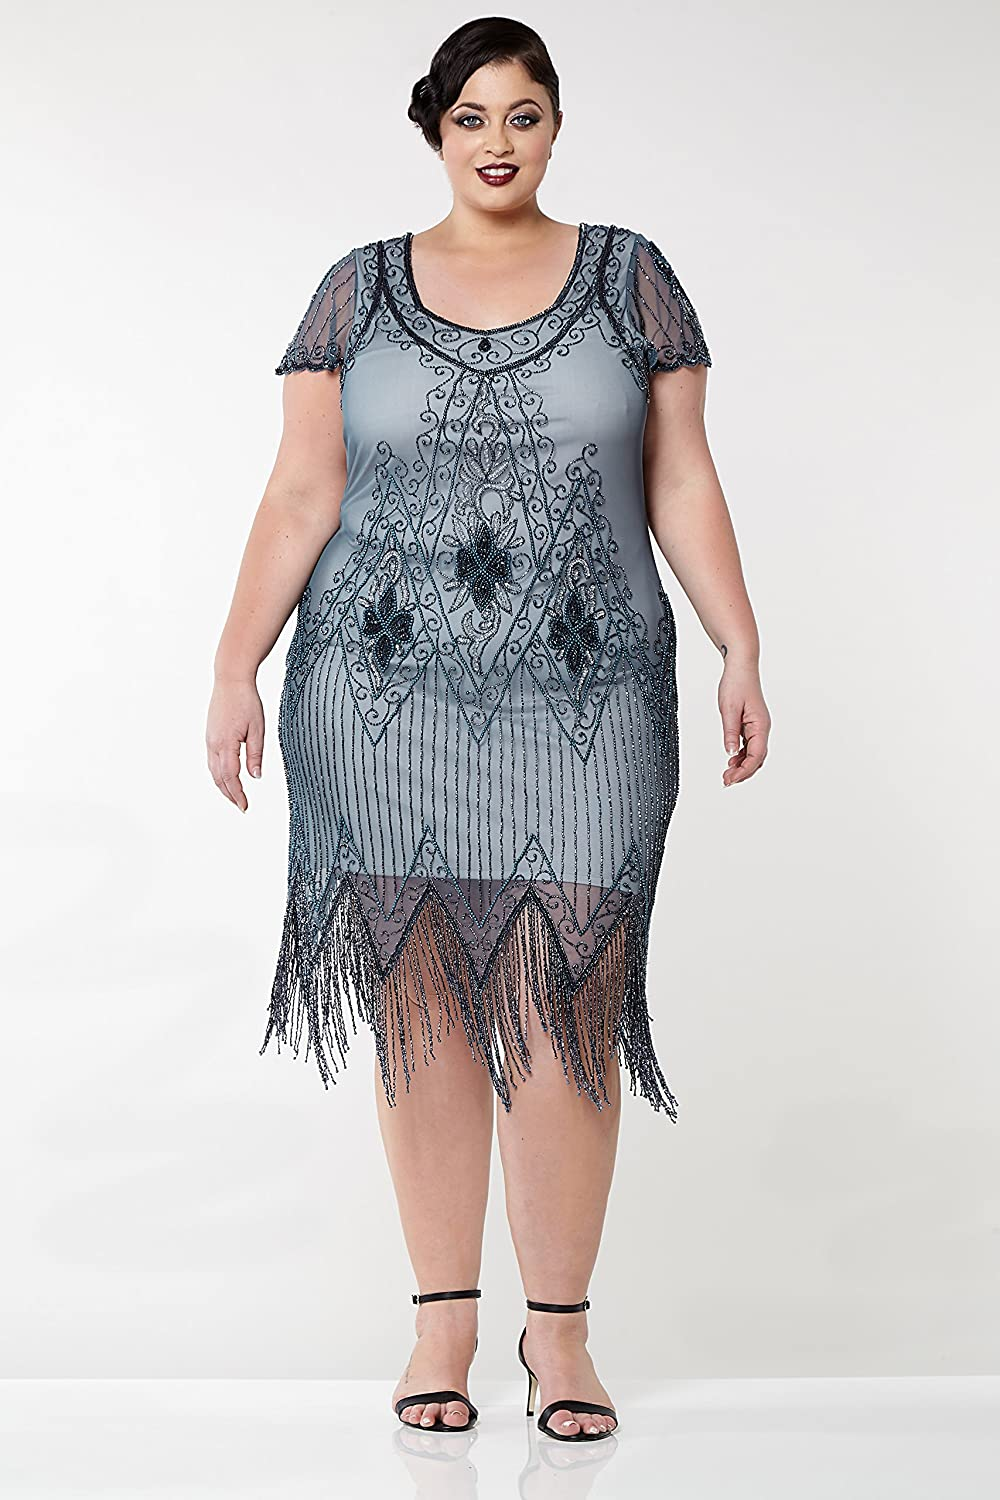 1920s Evening Dresses & Formal Gowns gatsbylady london Annette Vintage Inspired Fringe Flapper Dress in Blue Grey $124.86 AT vintagedancer.com